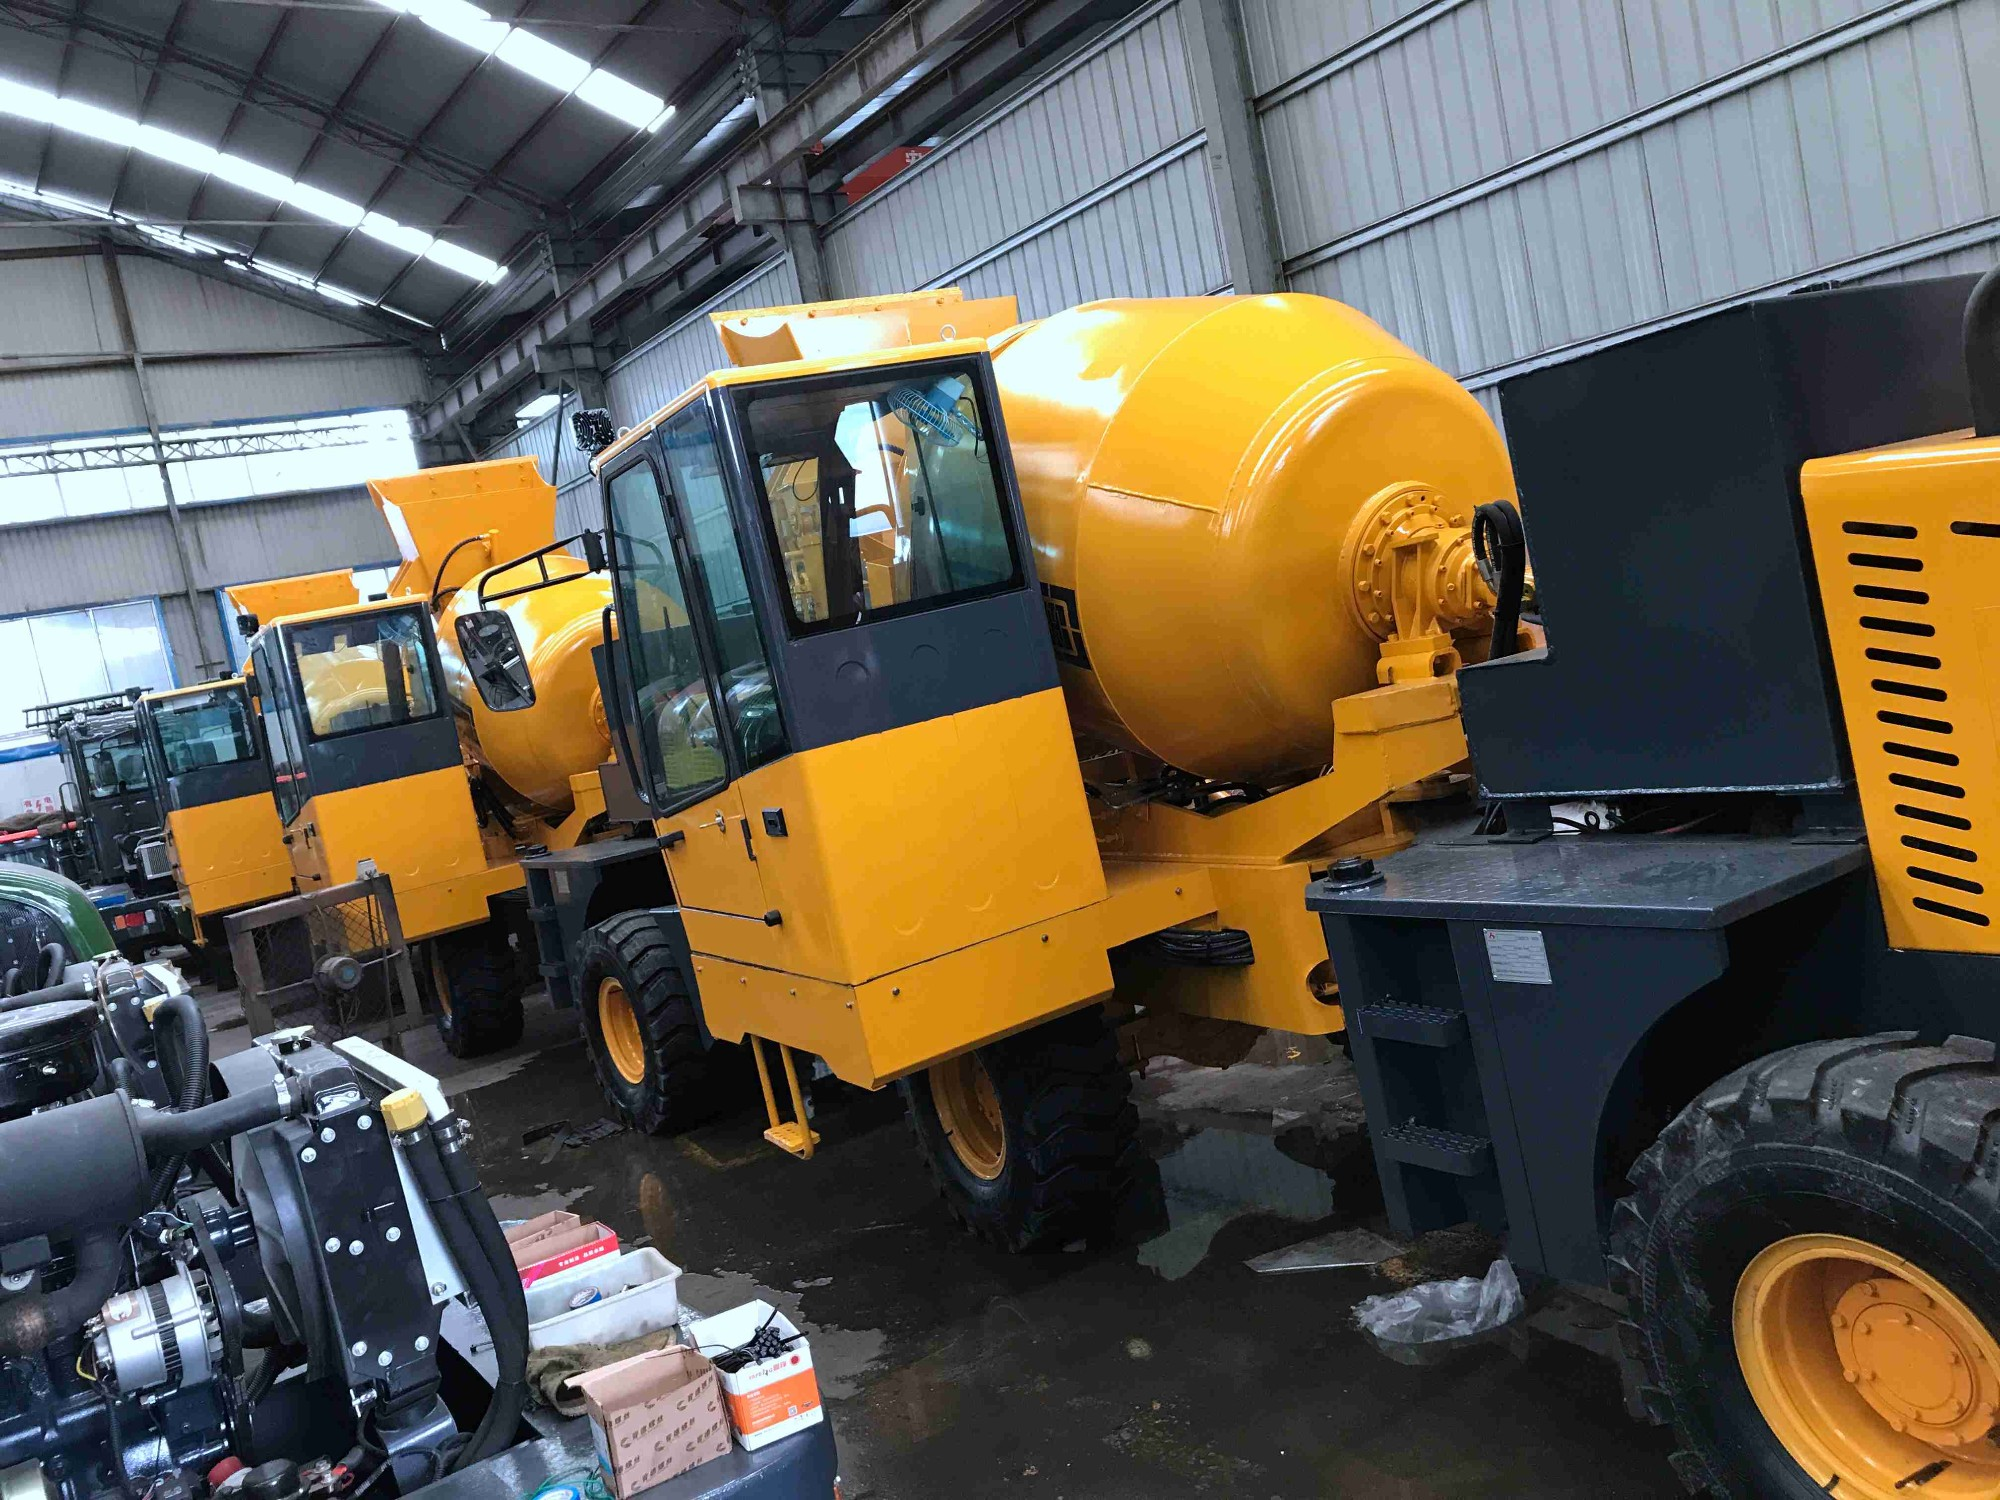 Sales Mobile Concrete Mixer With Self Loading Fuction For Russia Uzbekistan, Buy Mobile Concrete Mixer With Self Loading Fuction For Russia Uzbekistan, Mobile Concrete Mixer With Self Loading Fuction For Russia Uzbekistan Factory, Mobile Concrete Mixer With Self Loading Fuction For Russia Uzbekistan Brands